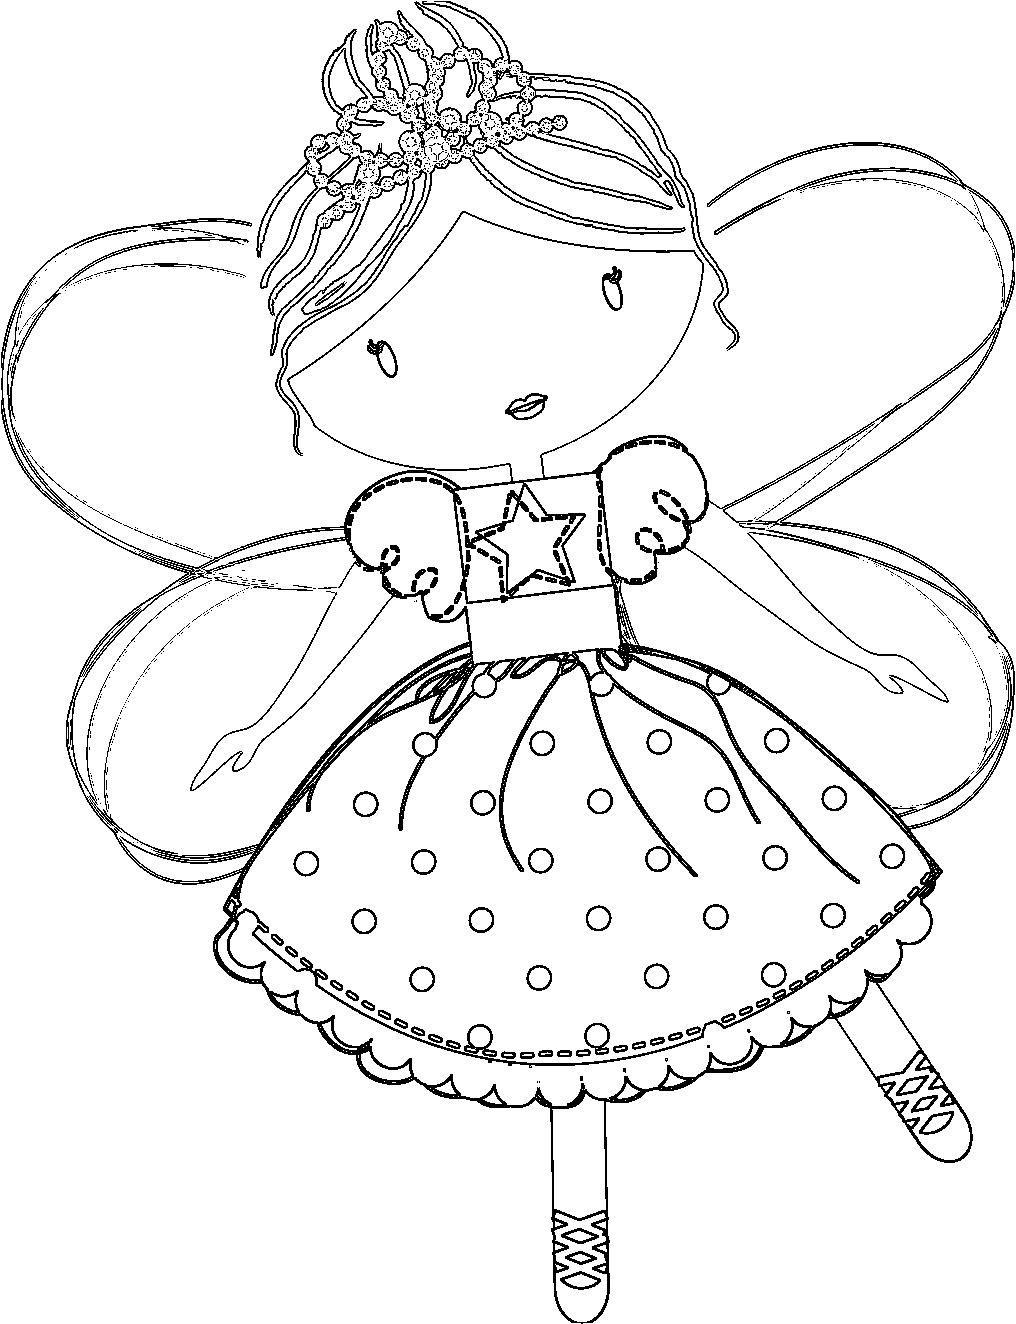 Free Colouring Sheets craft